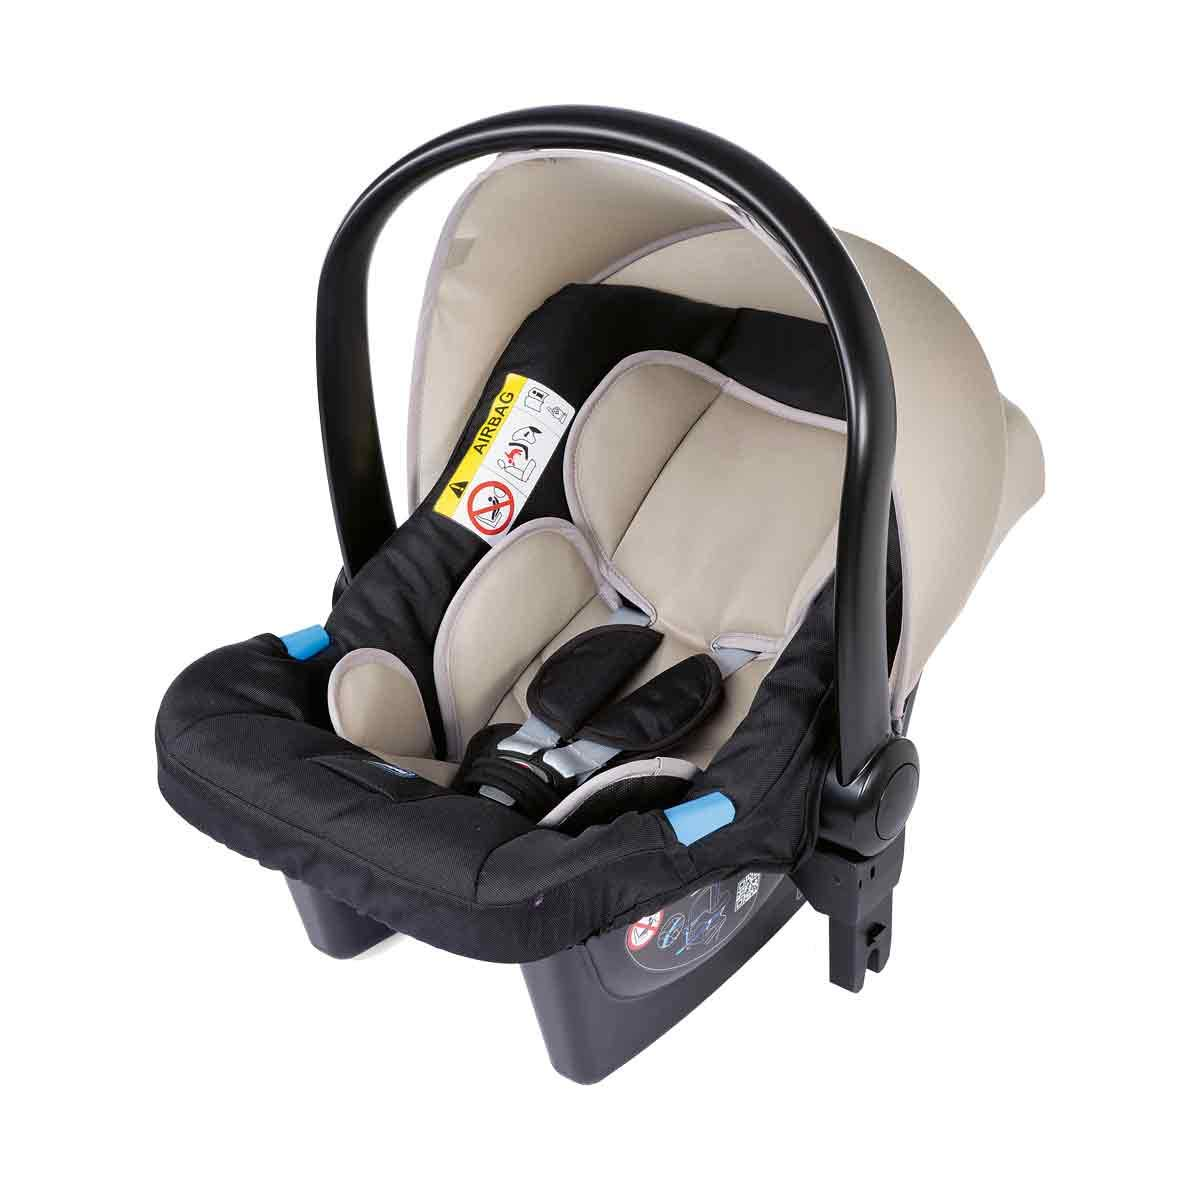 Trio Best Friend Beige 2019 Chicco A stylish and matching 3-in-1 set that is lightweight, versatile and practical Set includes Stroller Pushchair, Carrycot and Carseat Suitable for use from Birth to approx 3 years (Carrycot up to 6m / Carseat up to 13kg) 5